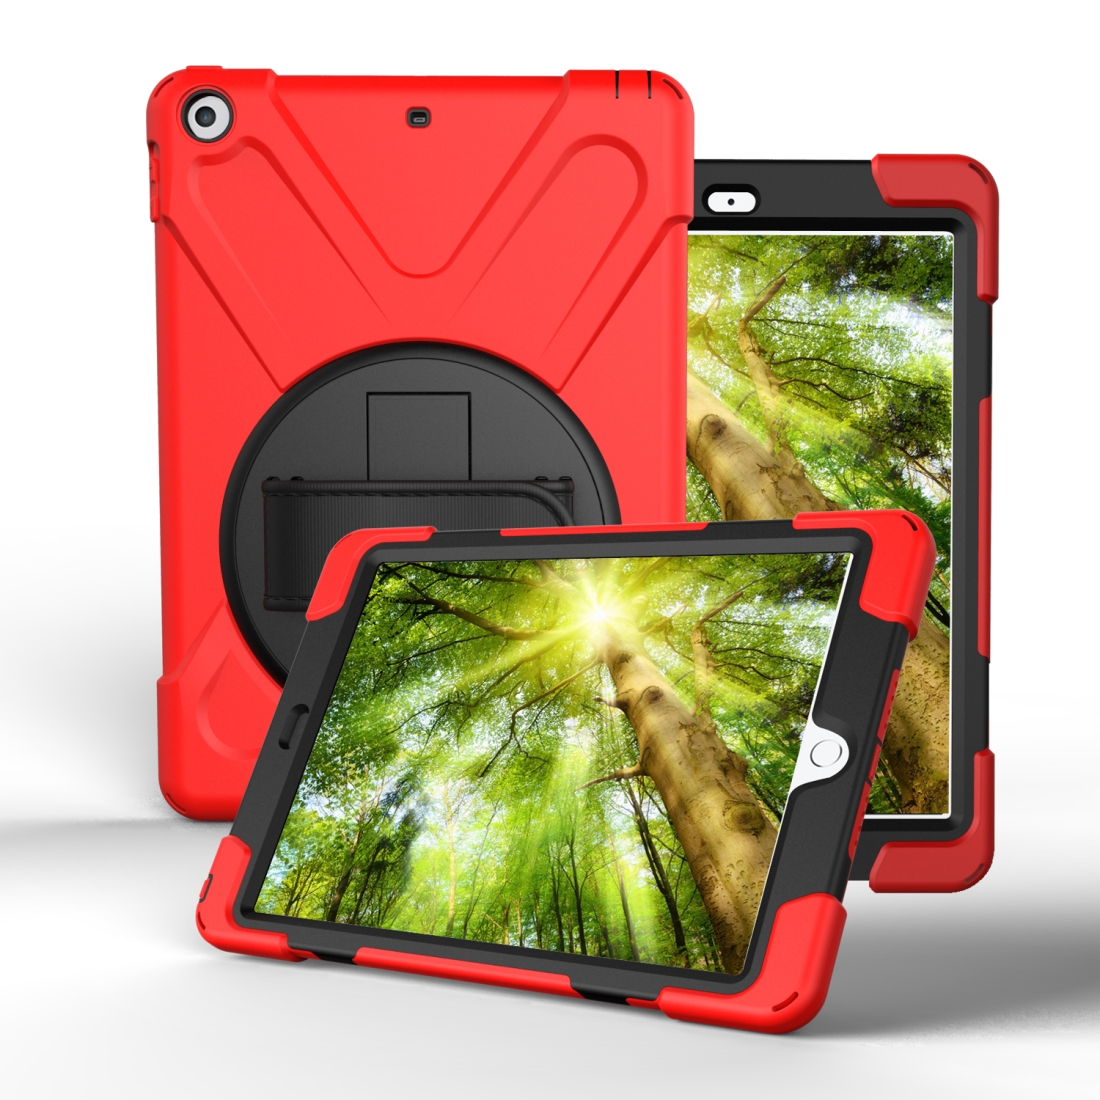 iPad Air 3 Case (10.5 Inch) Rotating Protective Case with Hand-strap (Red)